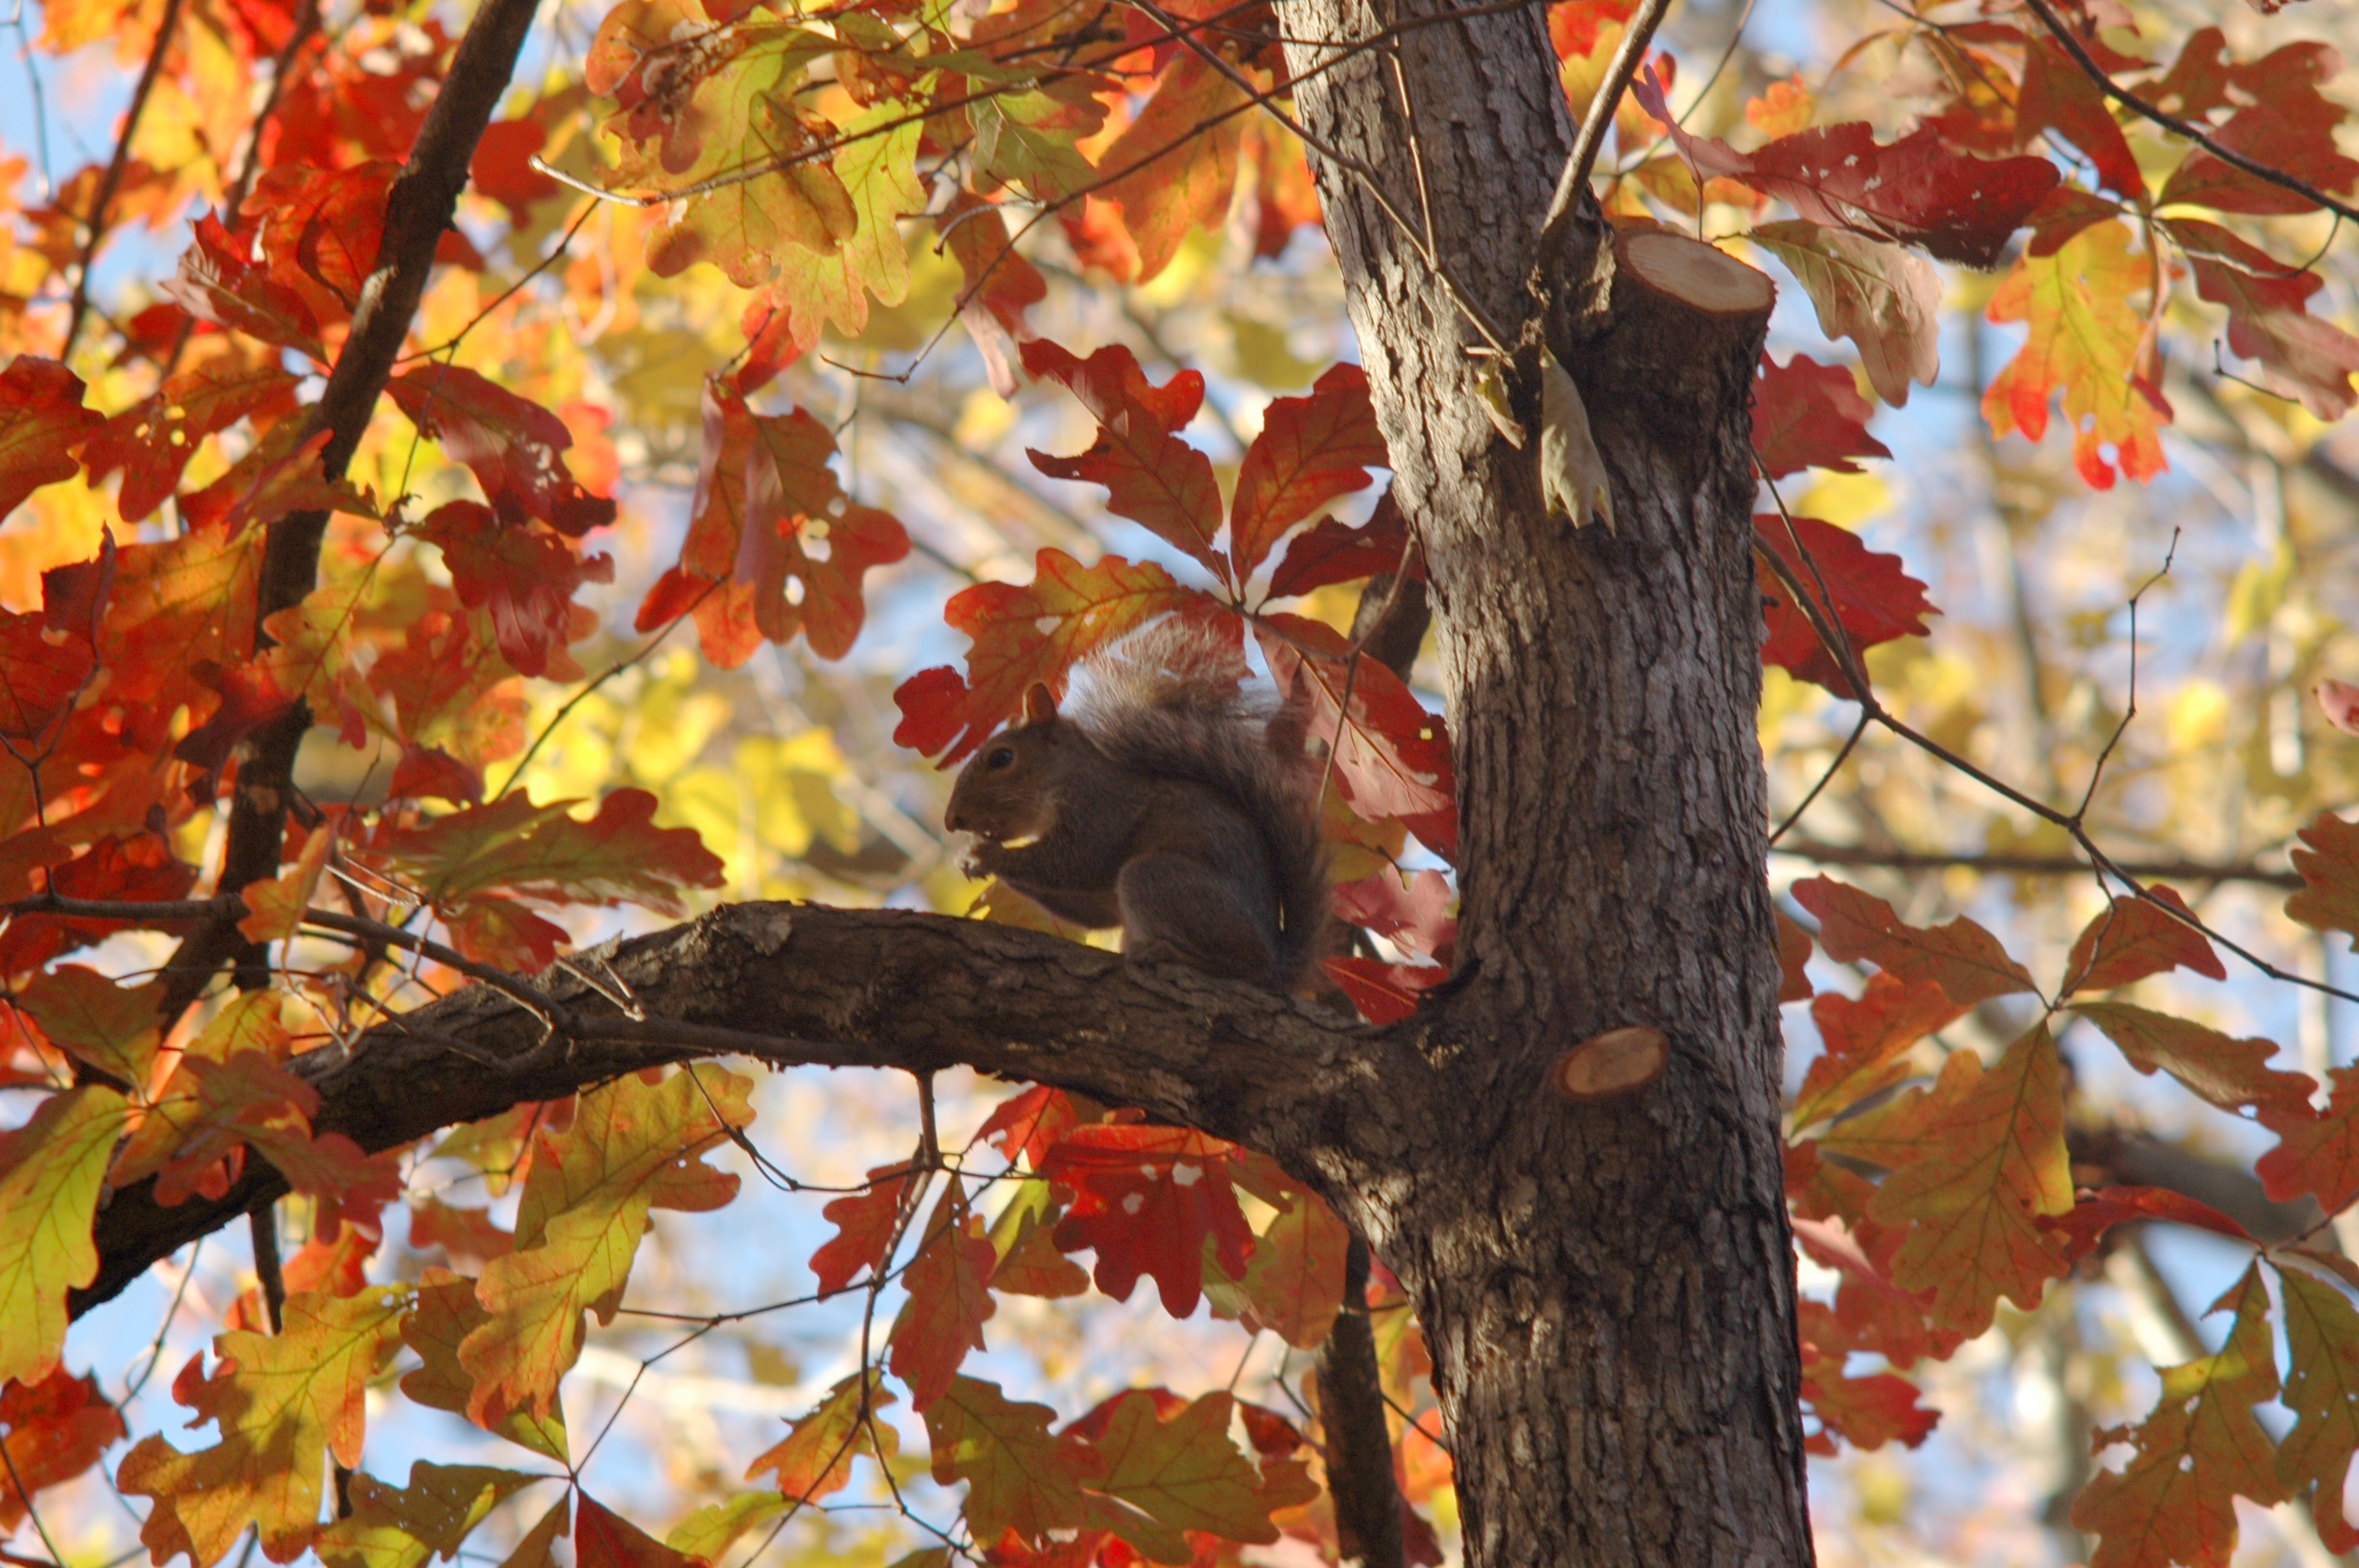 Squirrel in a fall tree photo